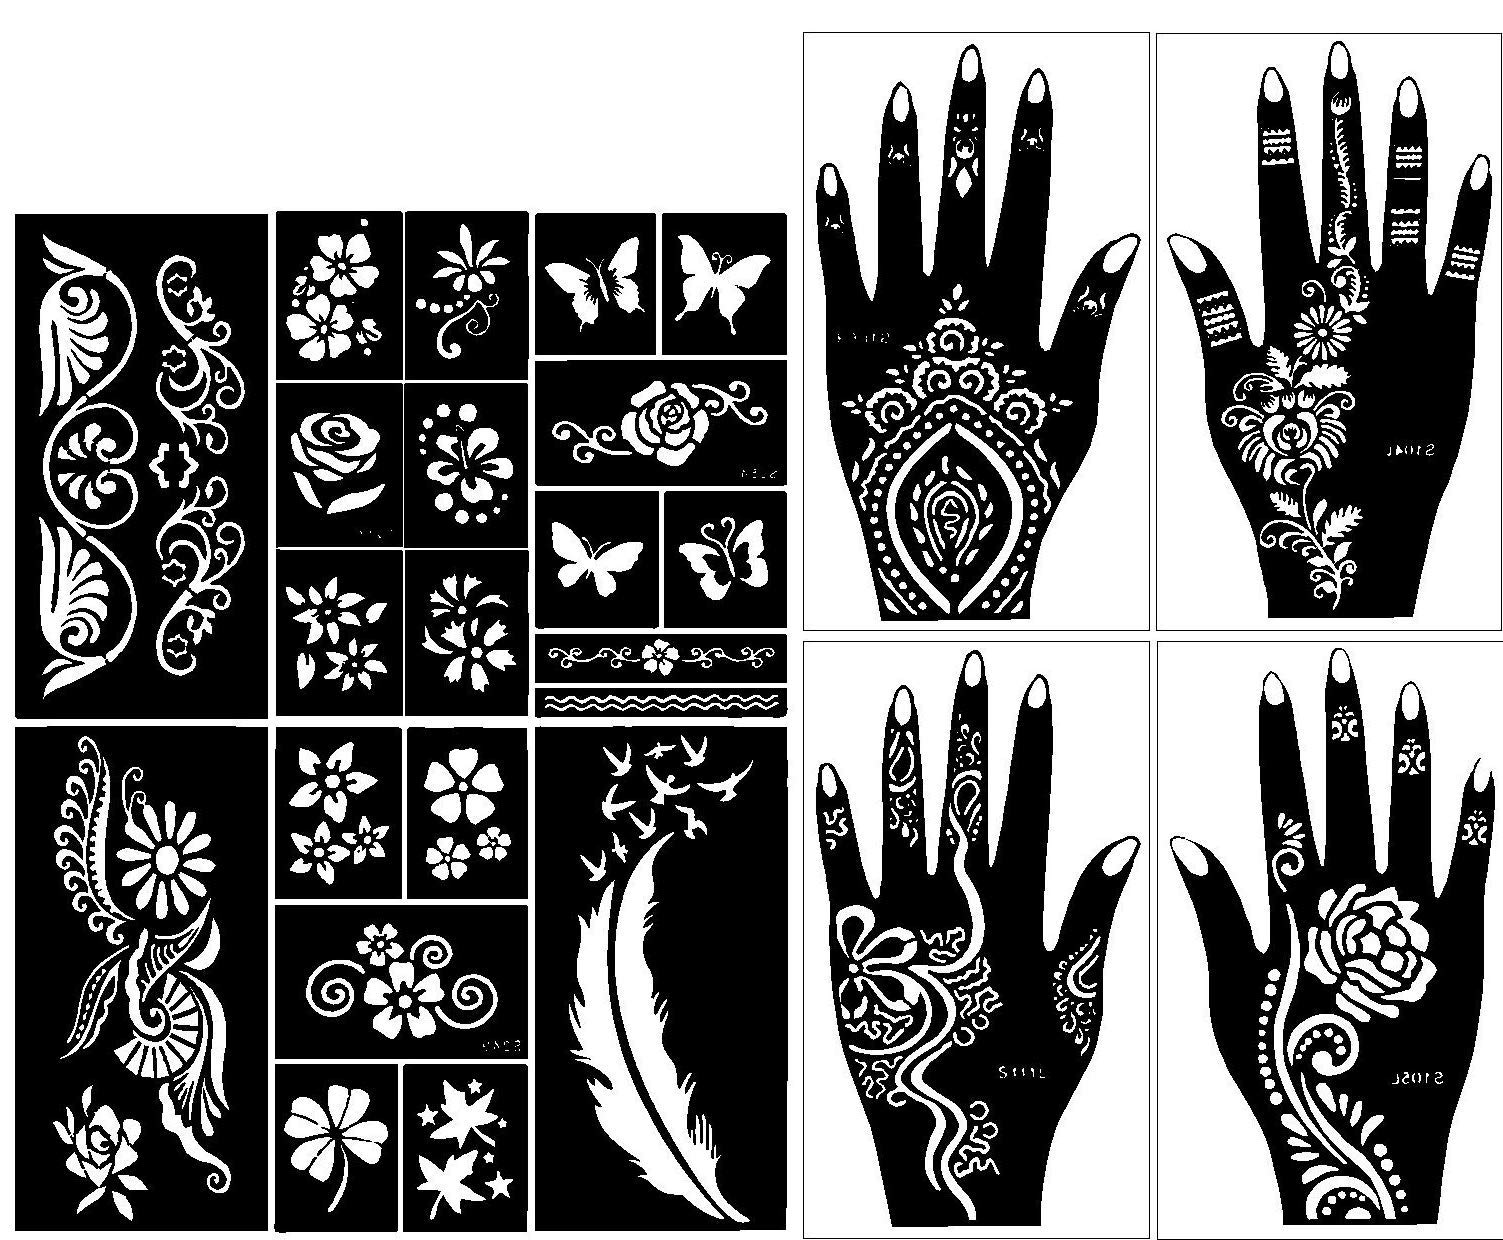 a434d993f0dd3 Amazon.com : Stencils for Henna Tattoos (10 Sheets) Self-Adhesive Beautiful  Body Art Temporary Tattoo Templates, Henna, Flower, Butterfly Designs :  Beauty